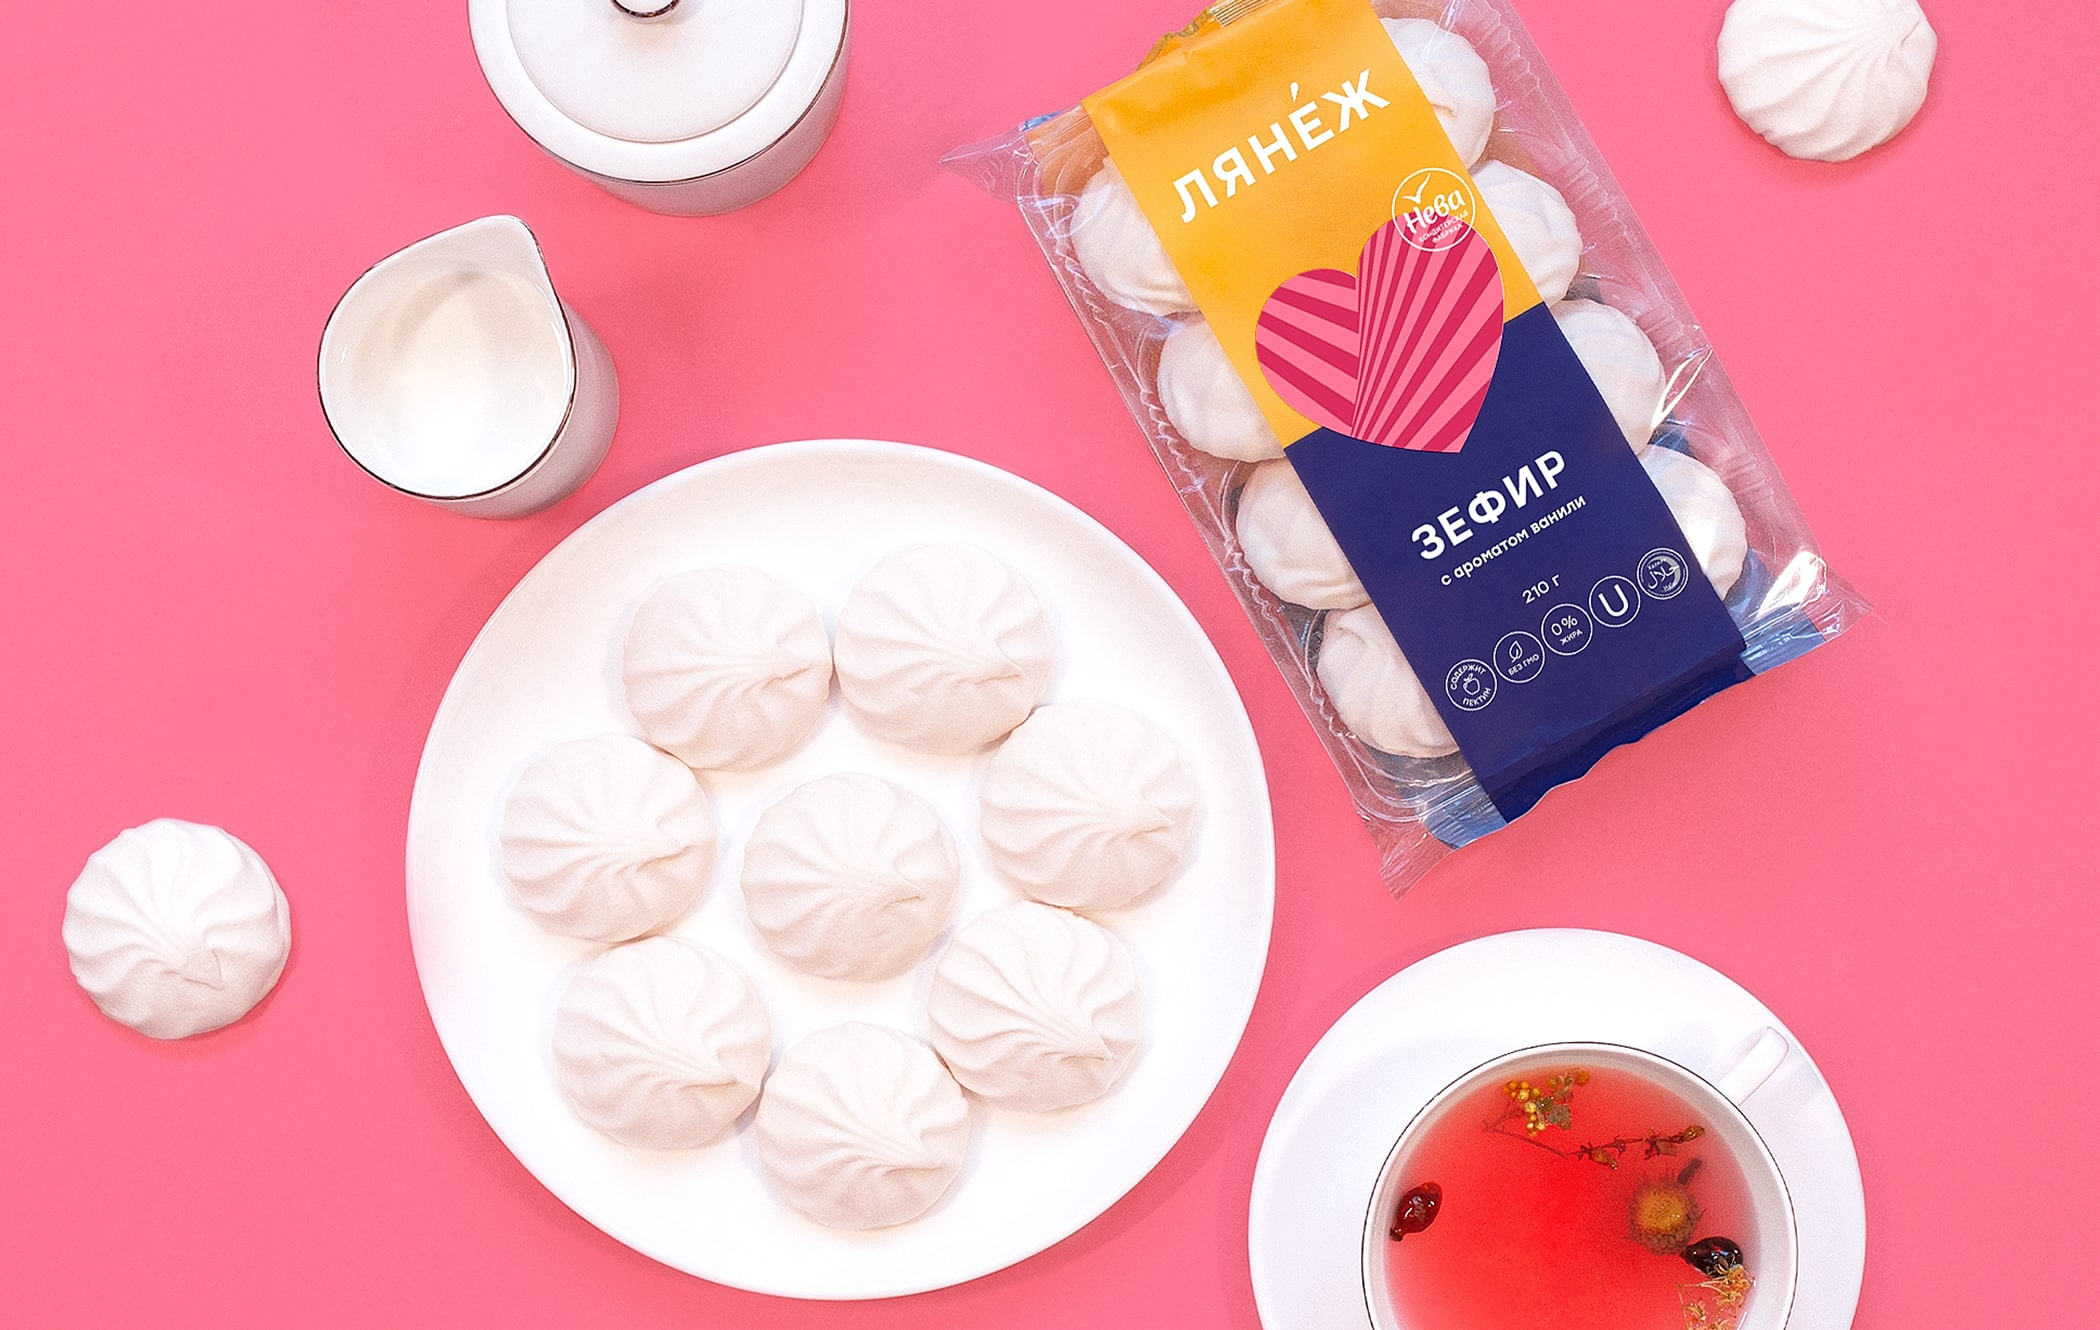 Ferma Branding Agency Create New Design for Marshmallow Label Lanezh